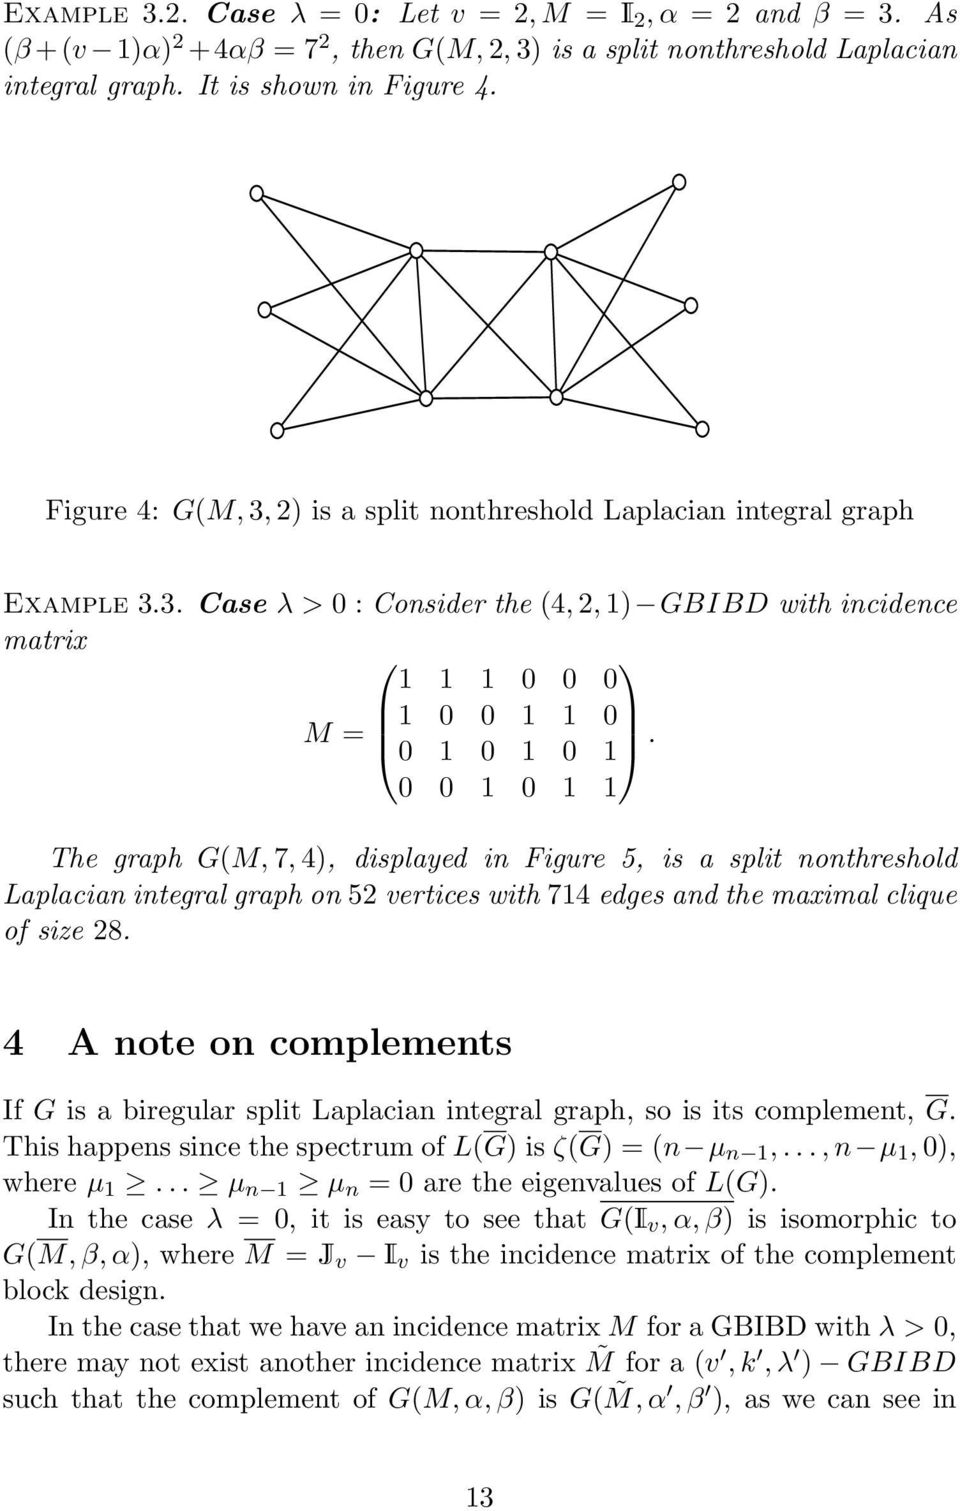 0 0 1 0 1 1 The graph G(M, 7, 4), displayed in Figure 5, is a split nonthreshold Laplacian integral graph on 52 vertices with 714 edges and the maximal clique of size 28.